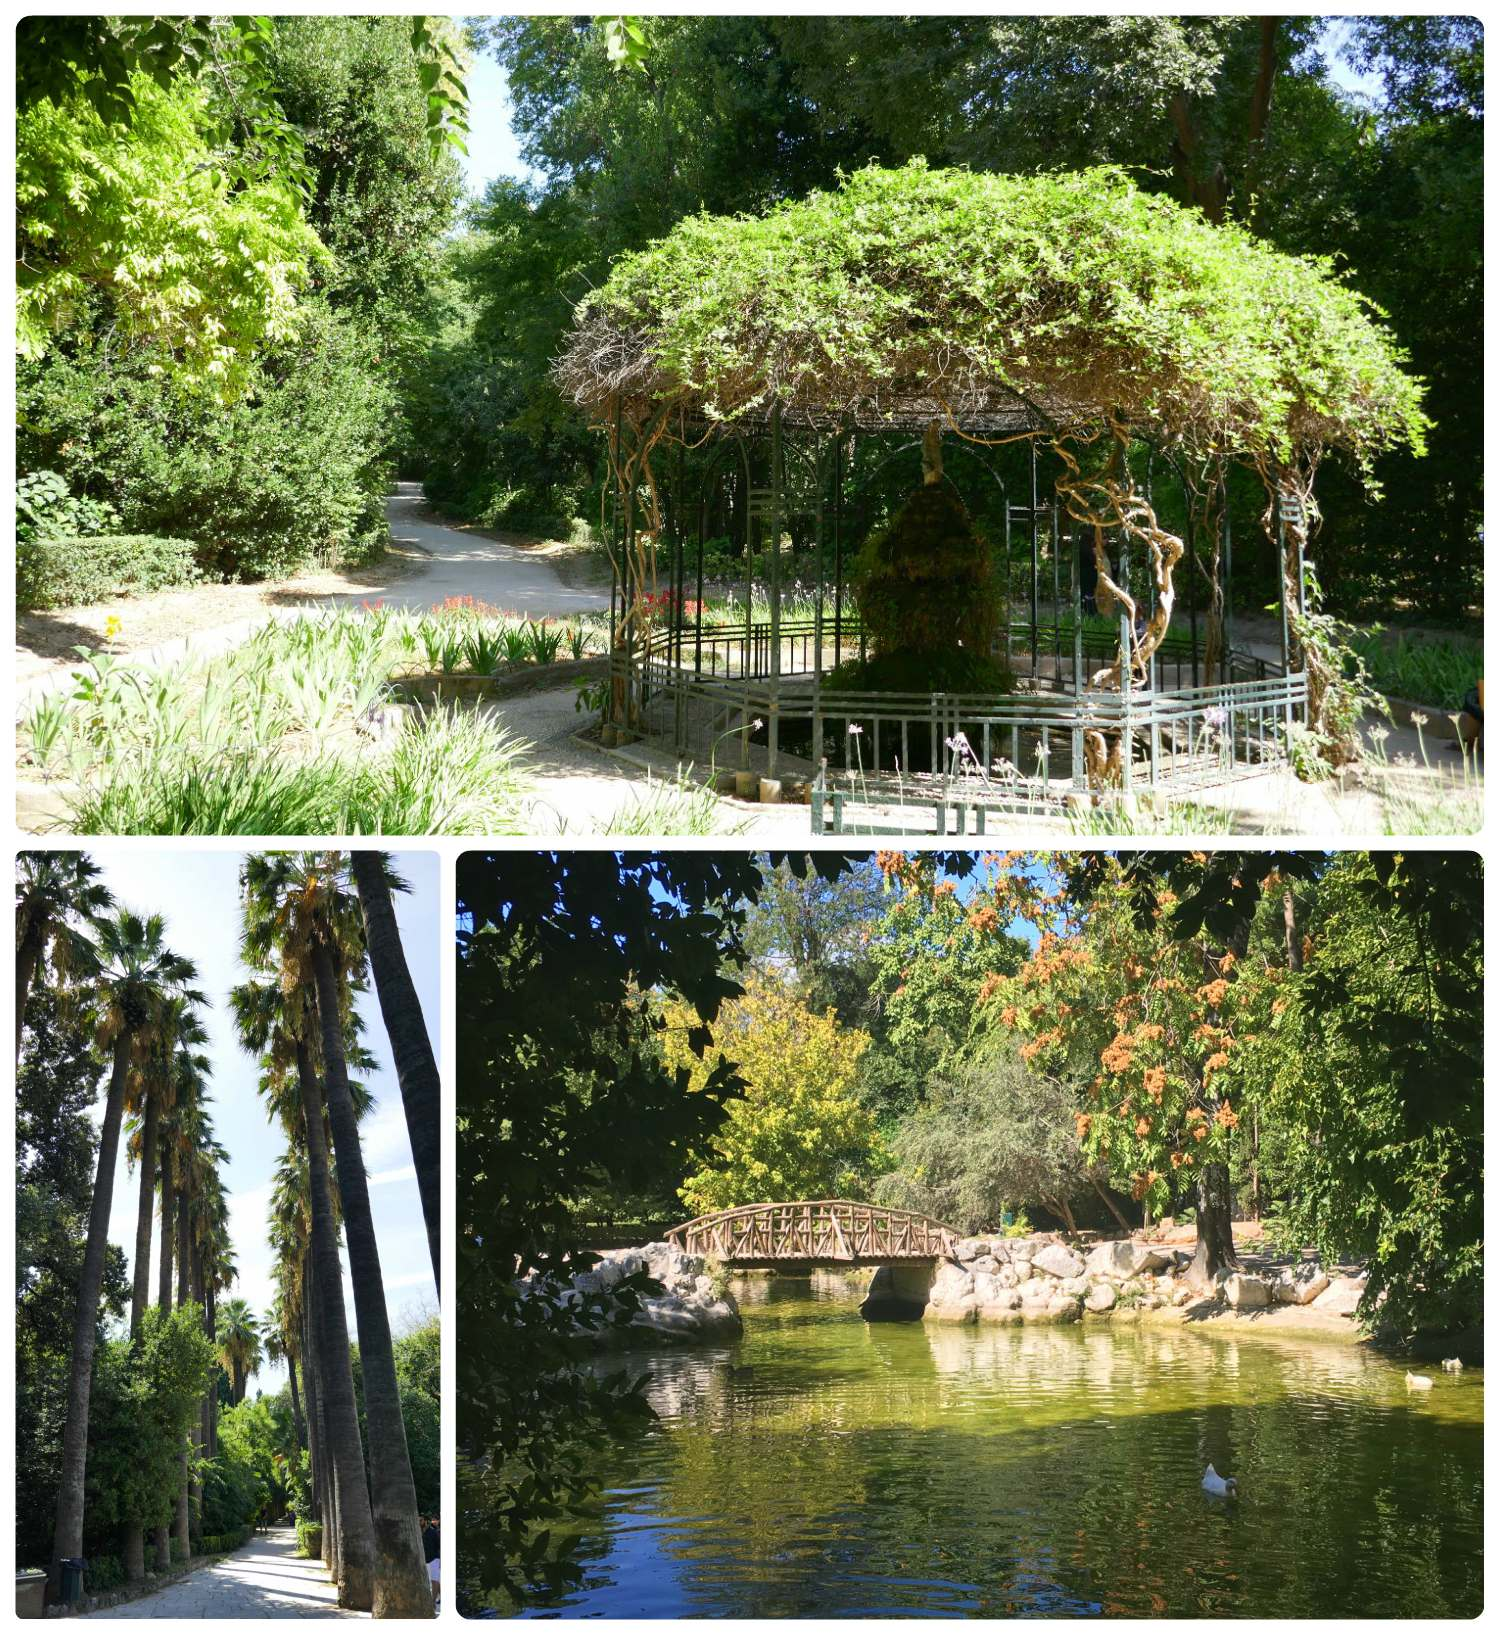 The National Garden in Athens is huge and has many different and interesting landscapes within it!